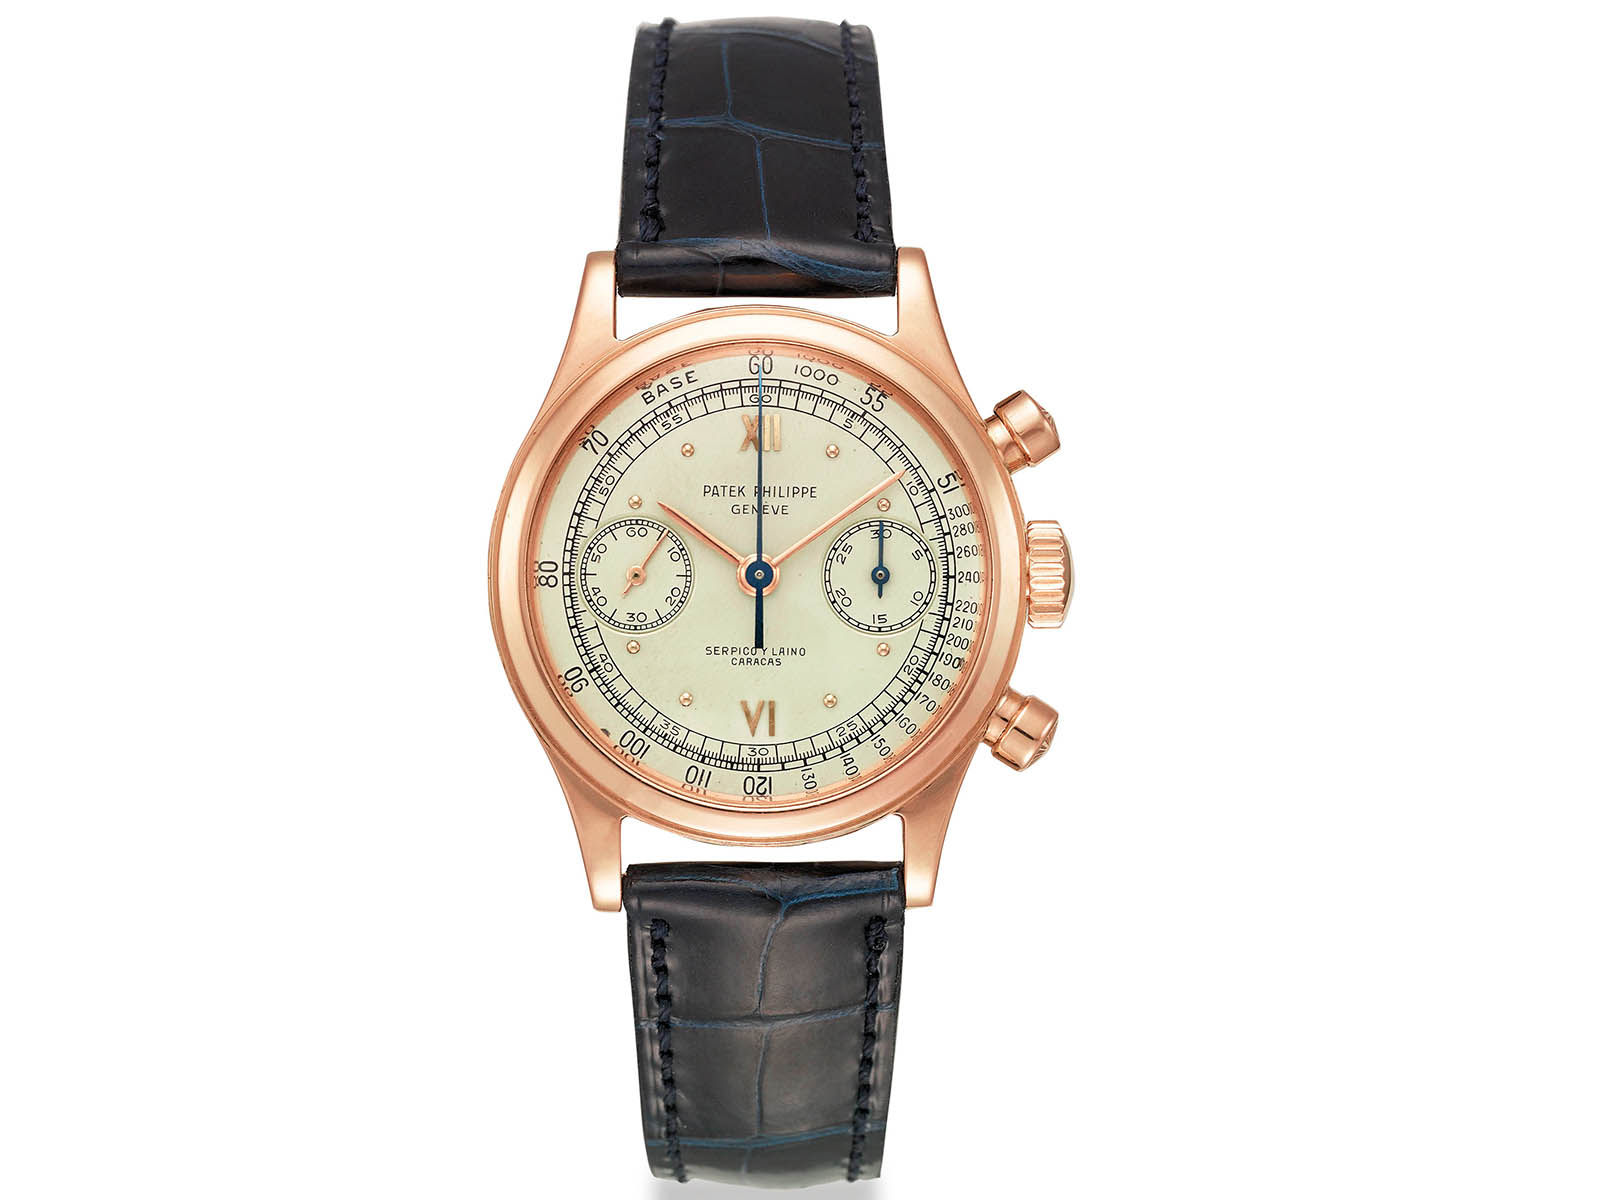 1463-patek-philippe-18k-pink-gold-chronograph-wristwatch-1.jpg